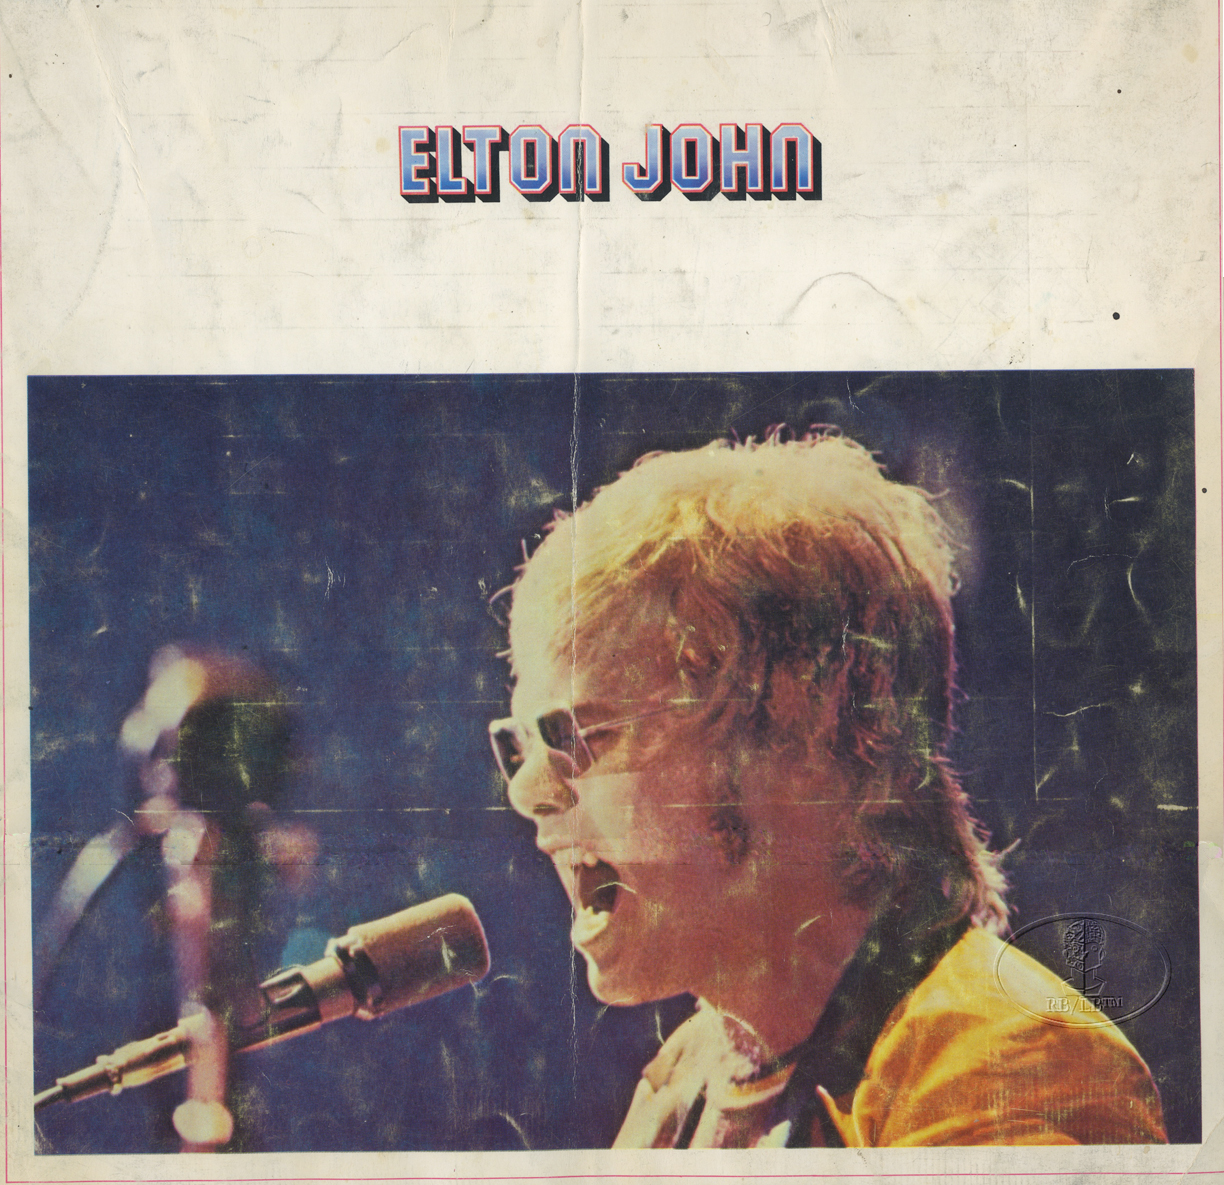 ELTON JOHN 1971 MADMAN ACROSS THE WATER Tour Concert Program Programme Book